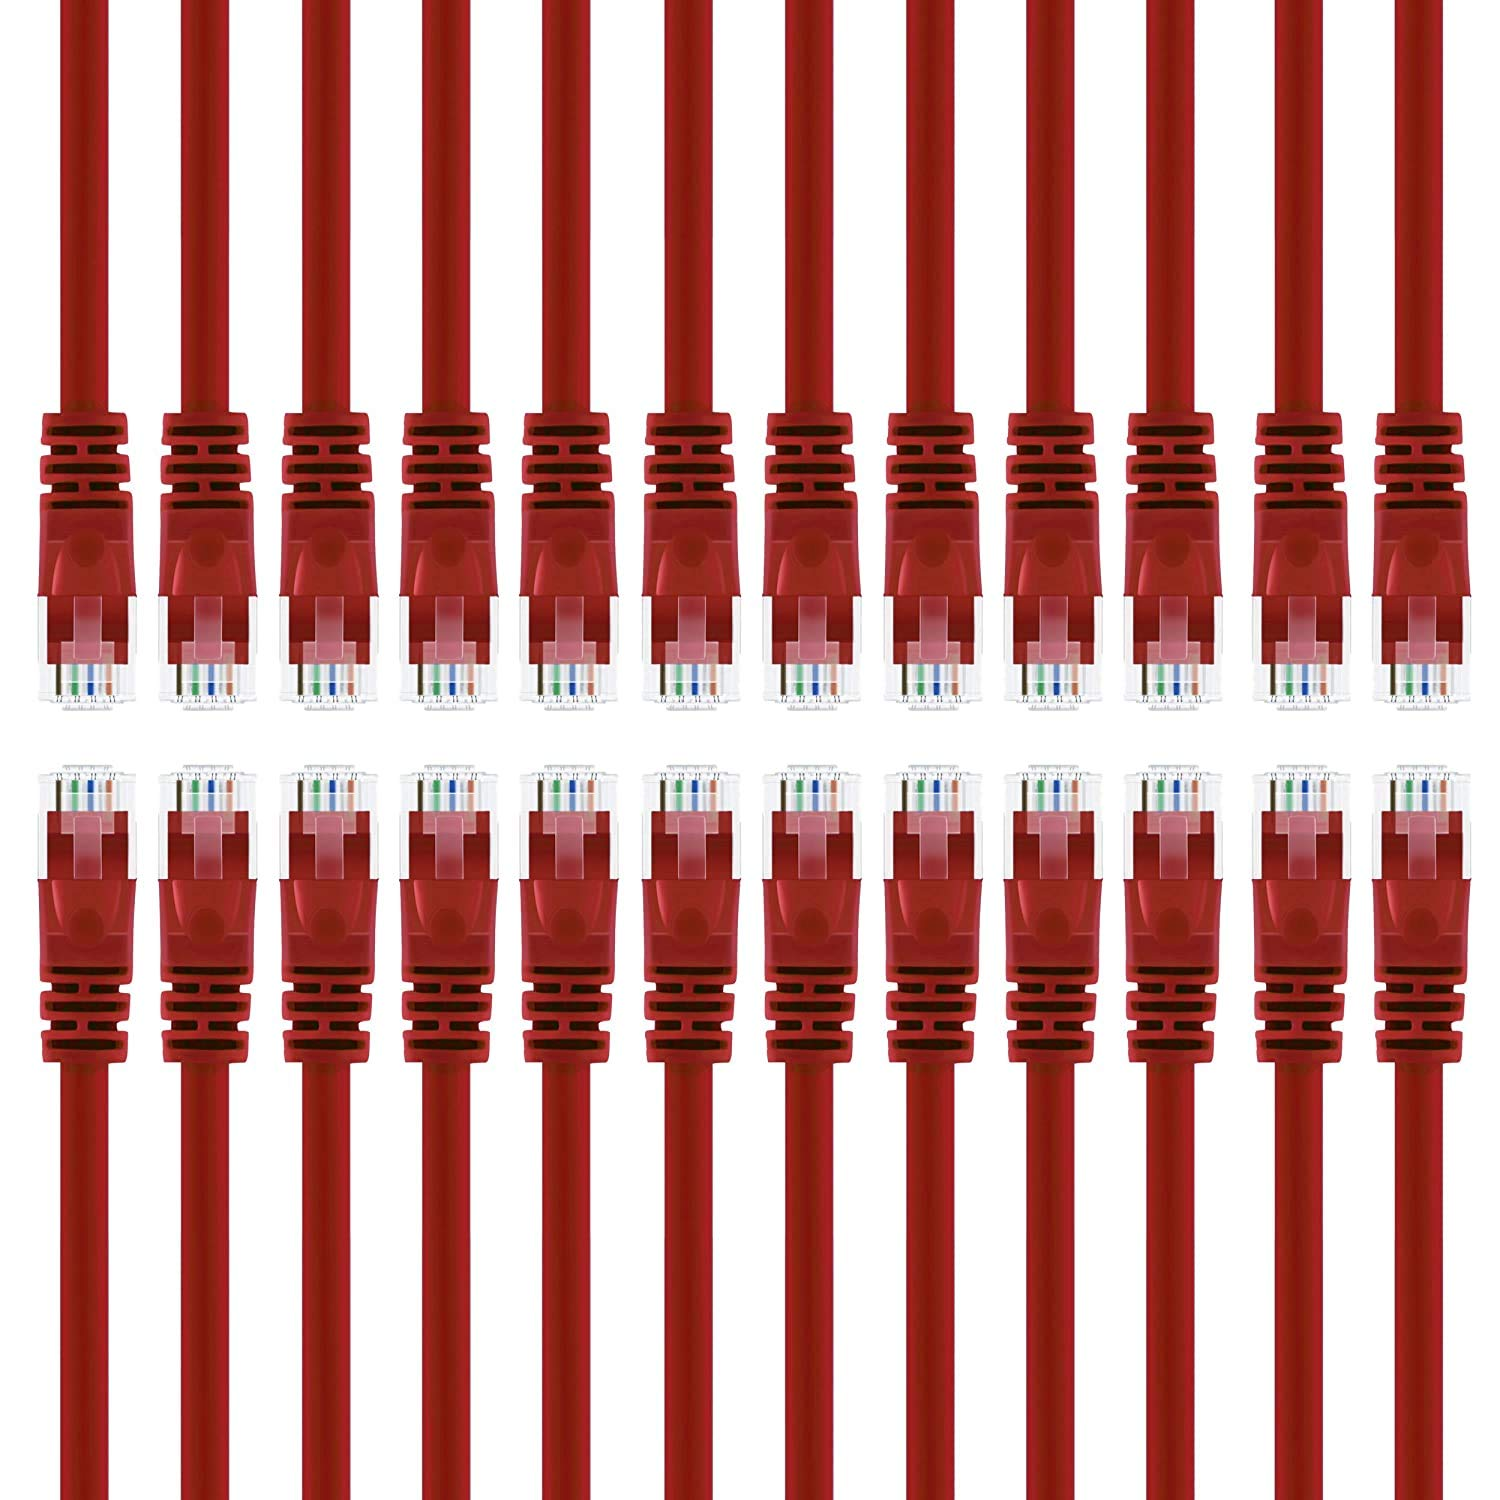 GearIT 24-Pack, Cat 6 Ethernet Cable Cat6 Snagless Patch 3 Feet - Snagless RJ45 Computer LAN Network Cord, Red - Compatible with 24 48 Port Switch POE Rackmount 24port Gigabit